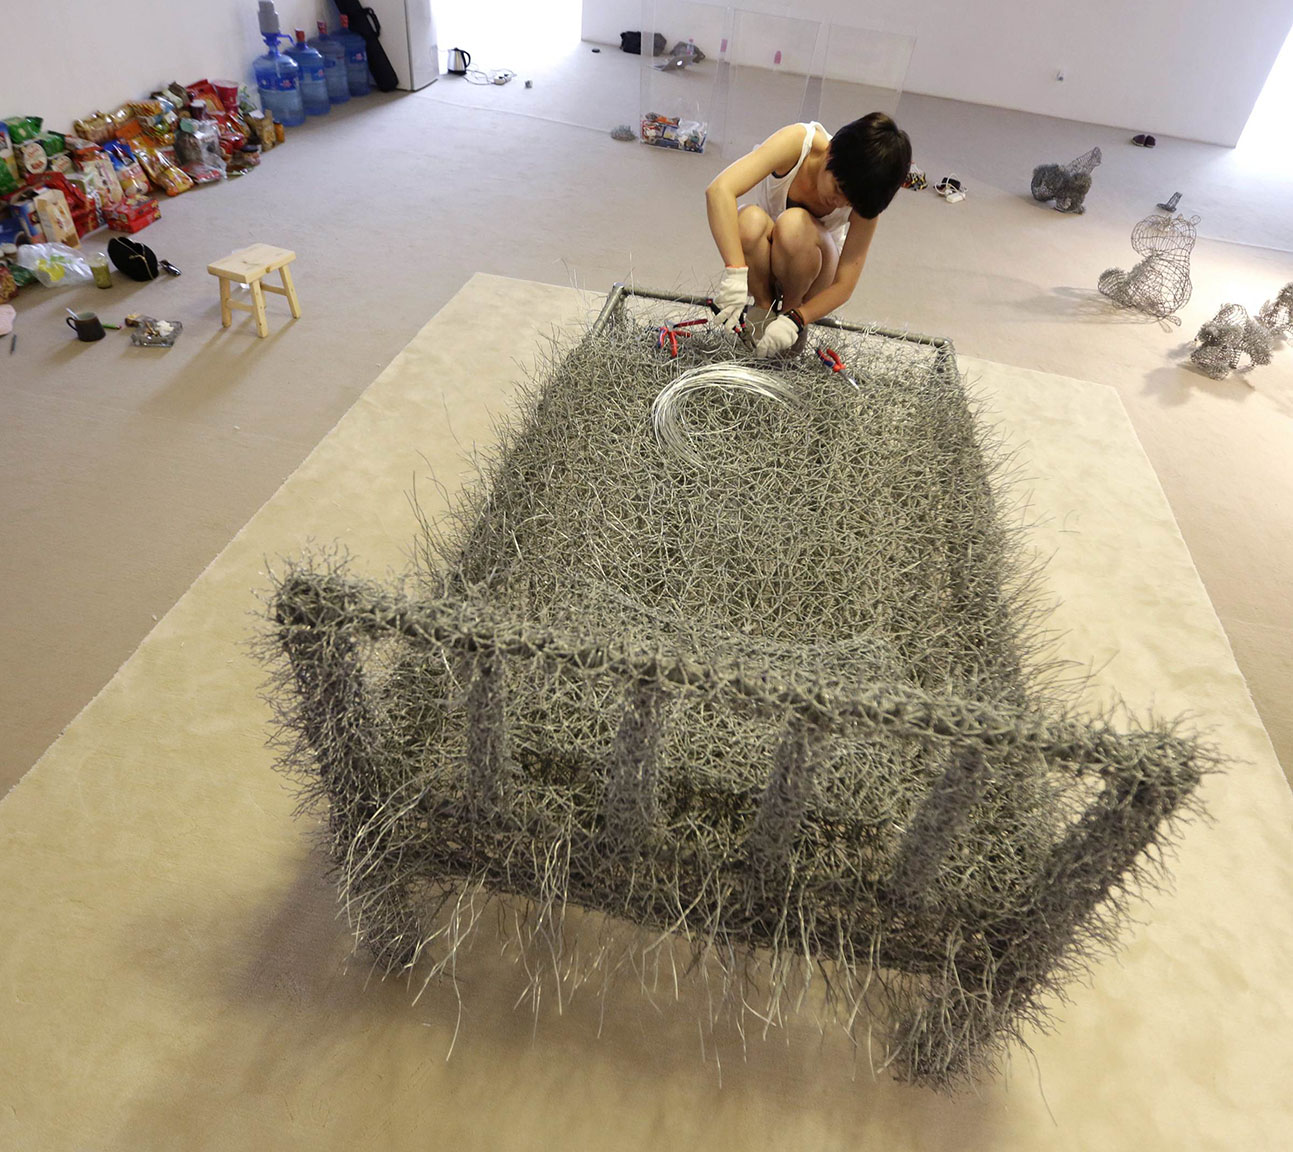 Chinese artist Zhou Jie works on an iron wire bed